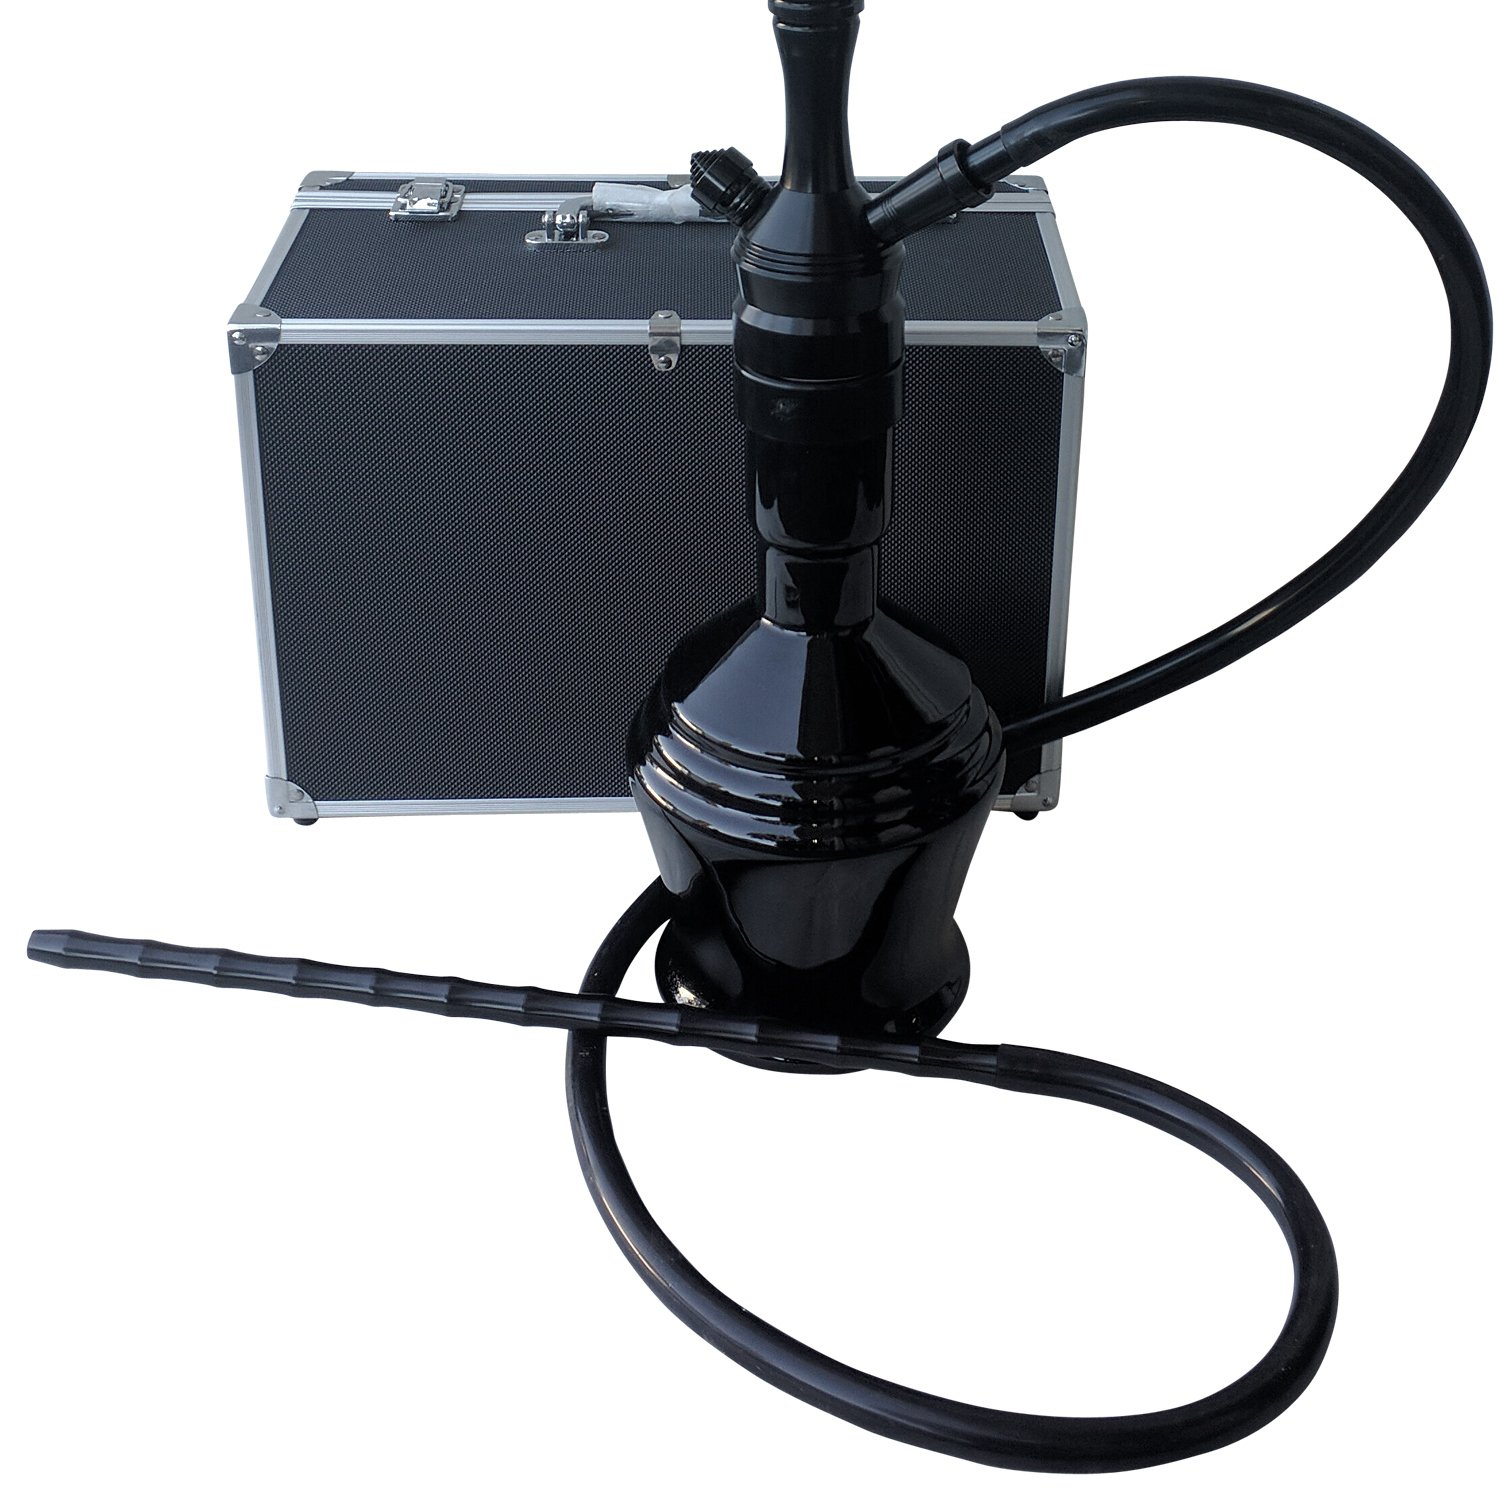 The 30'' Black Panther Aluminum Hookah Shisha With a Premium Carry Case & Silicone Hose